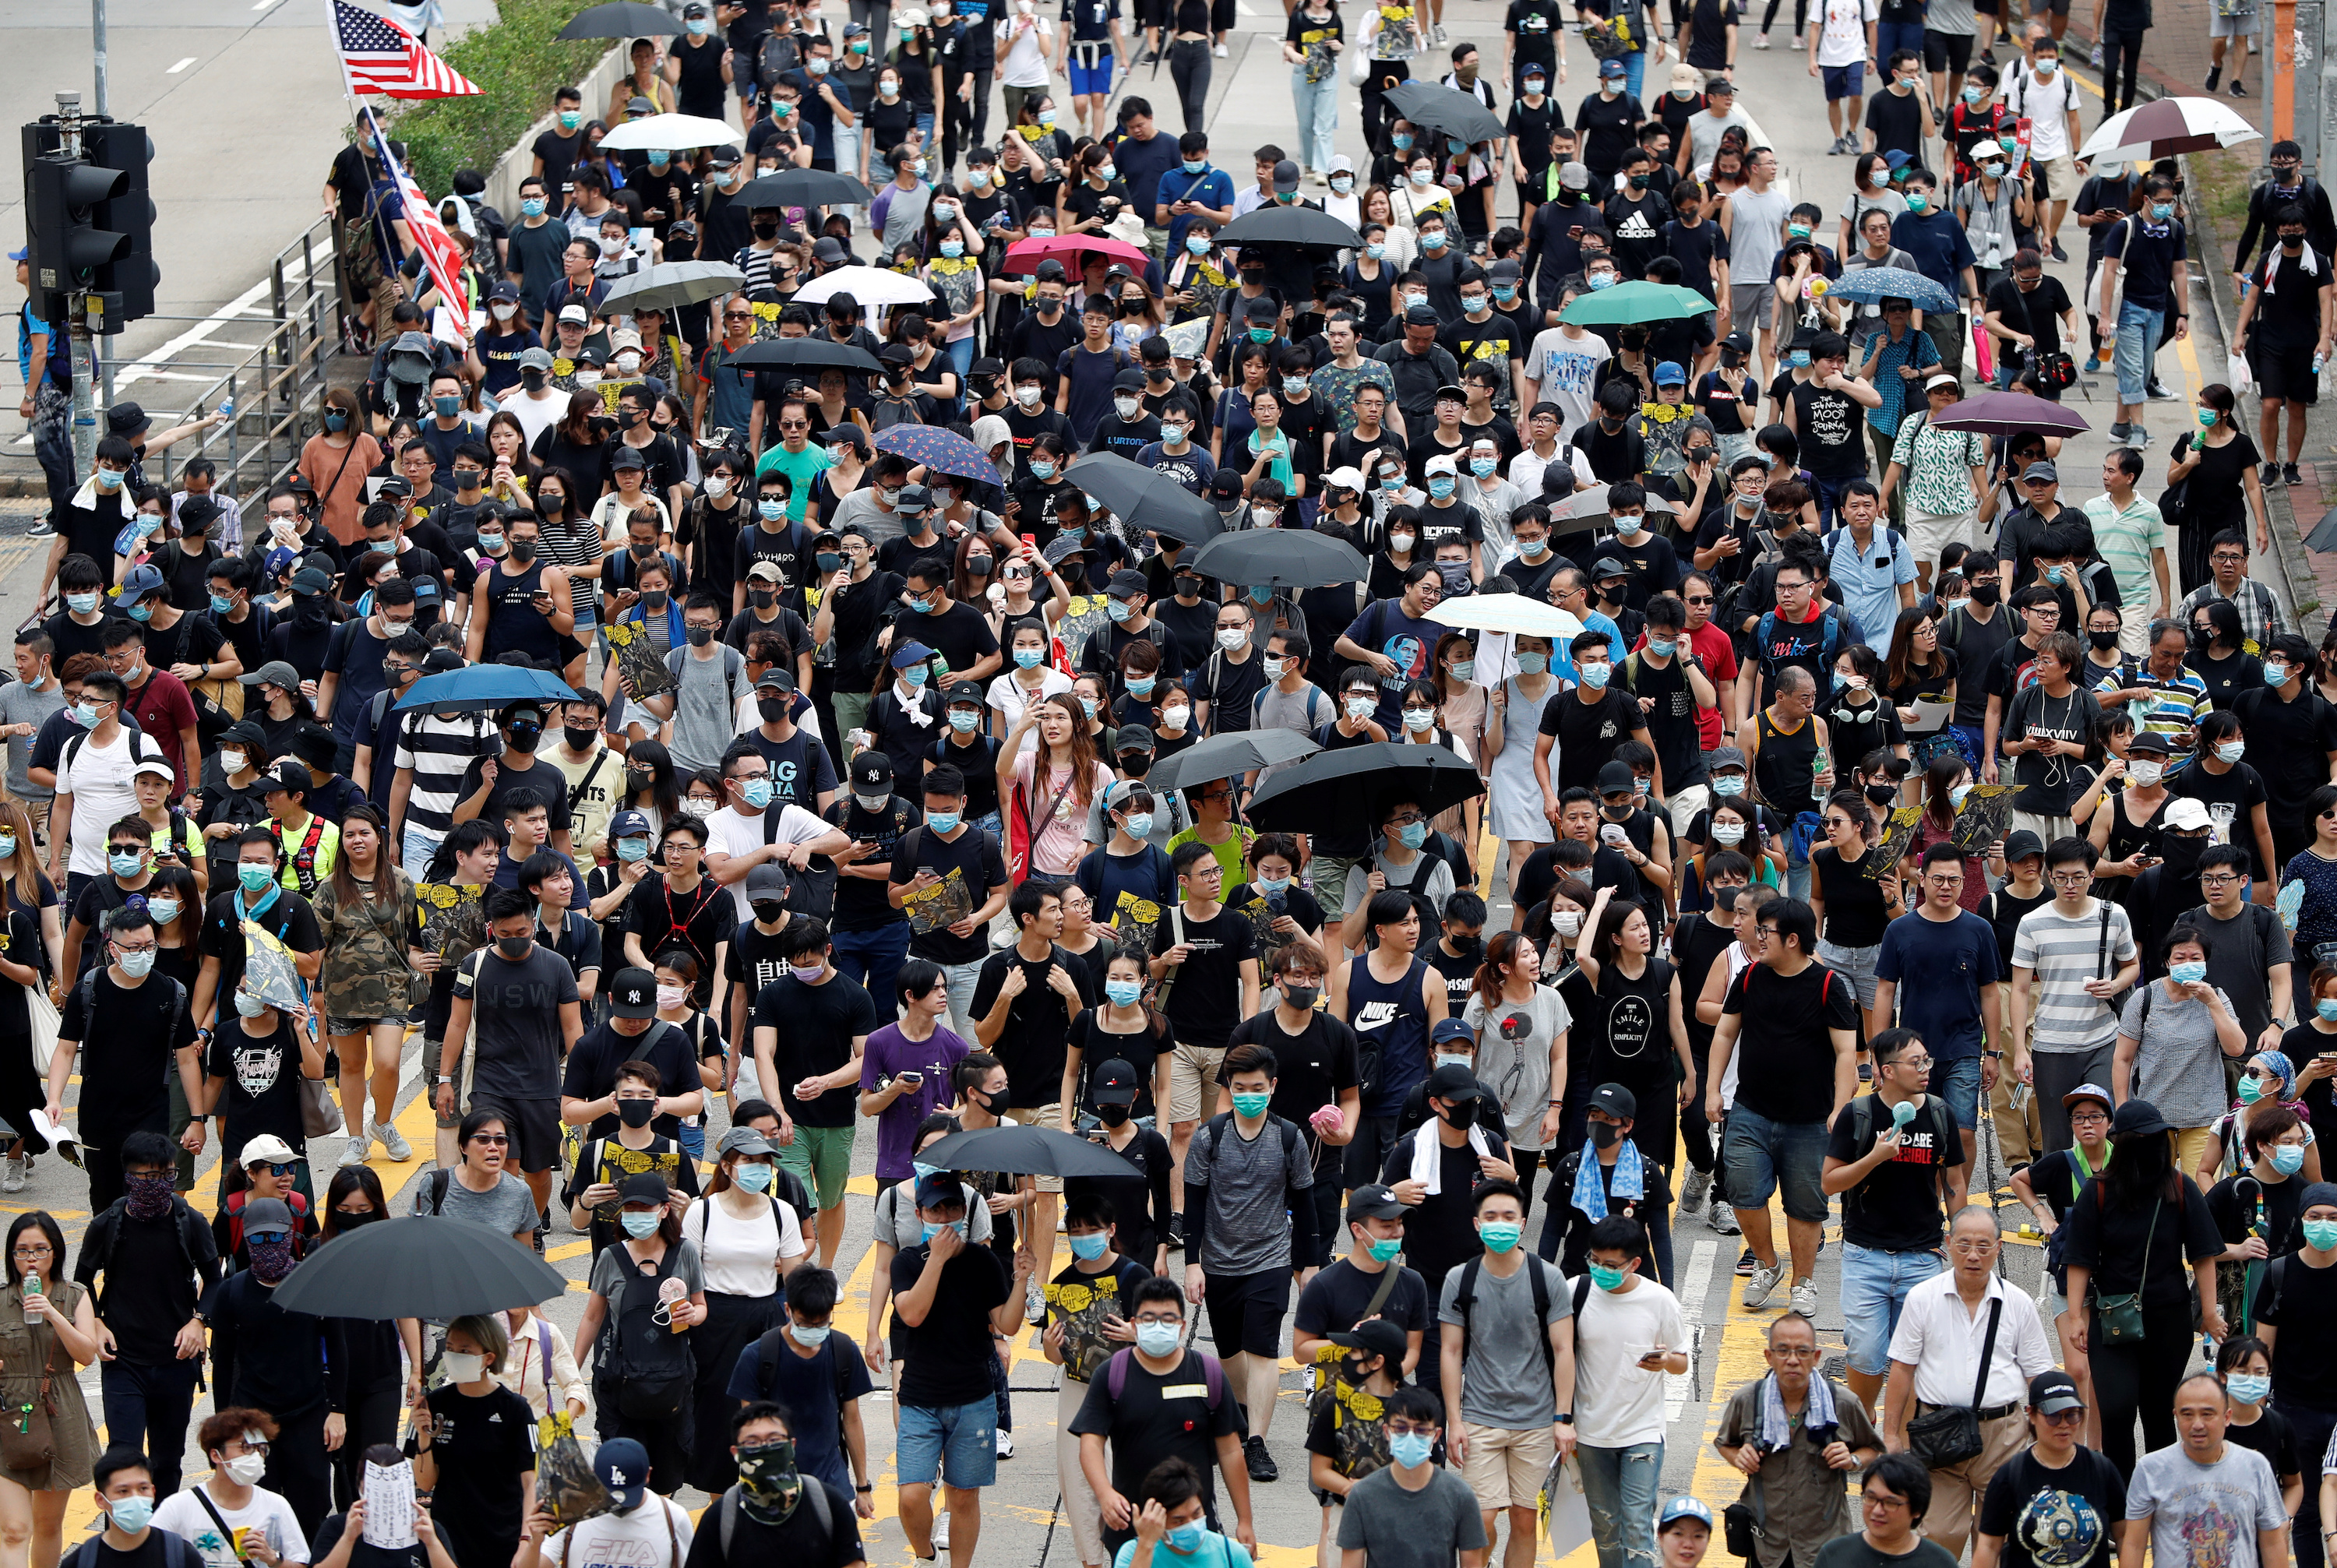 China Expert Warns Hongkongers Beijing Could Launch an Attack on Protesters at This Weekend's Rally